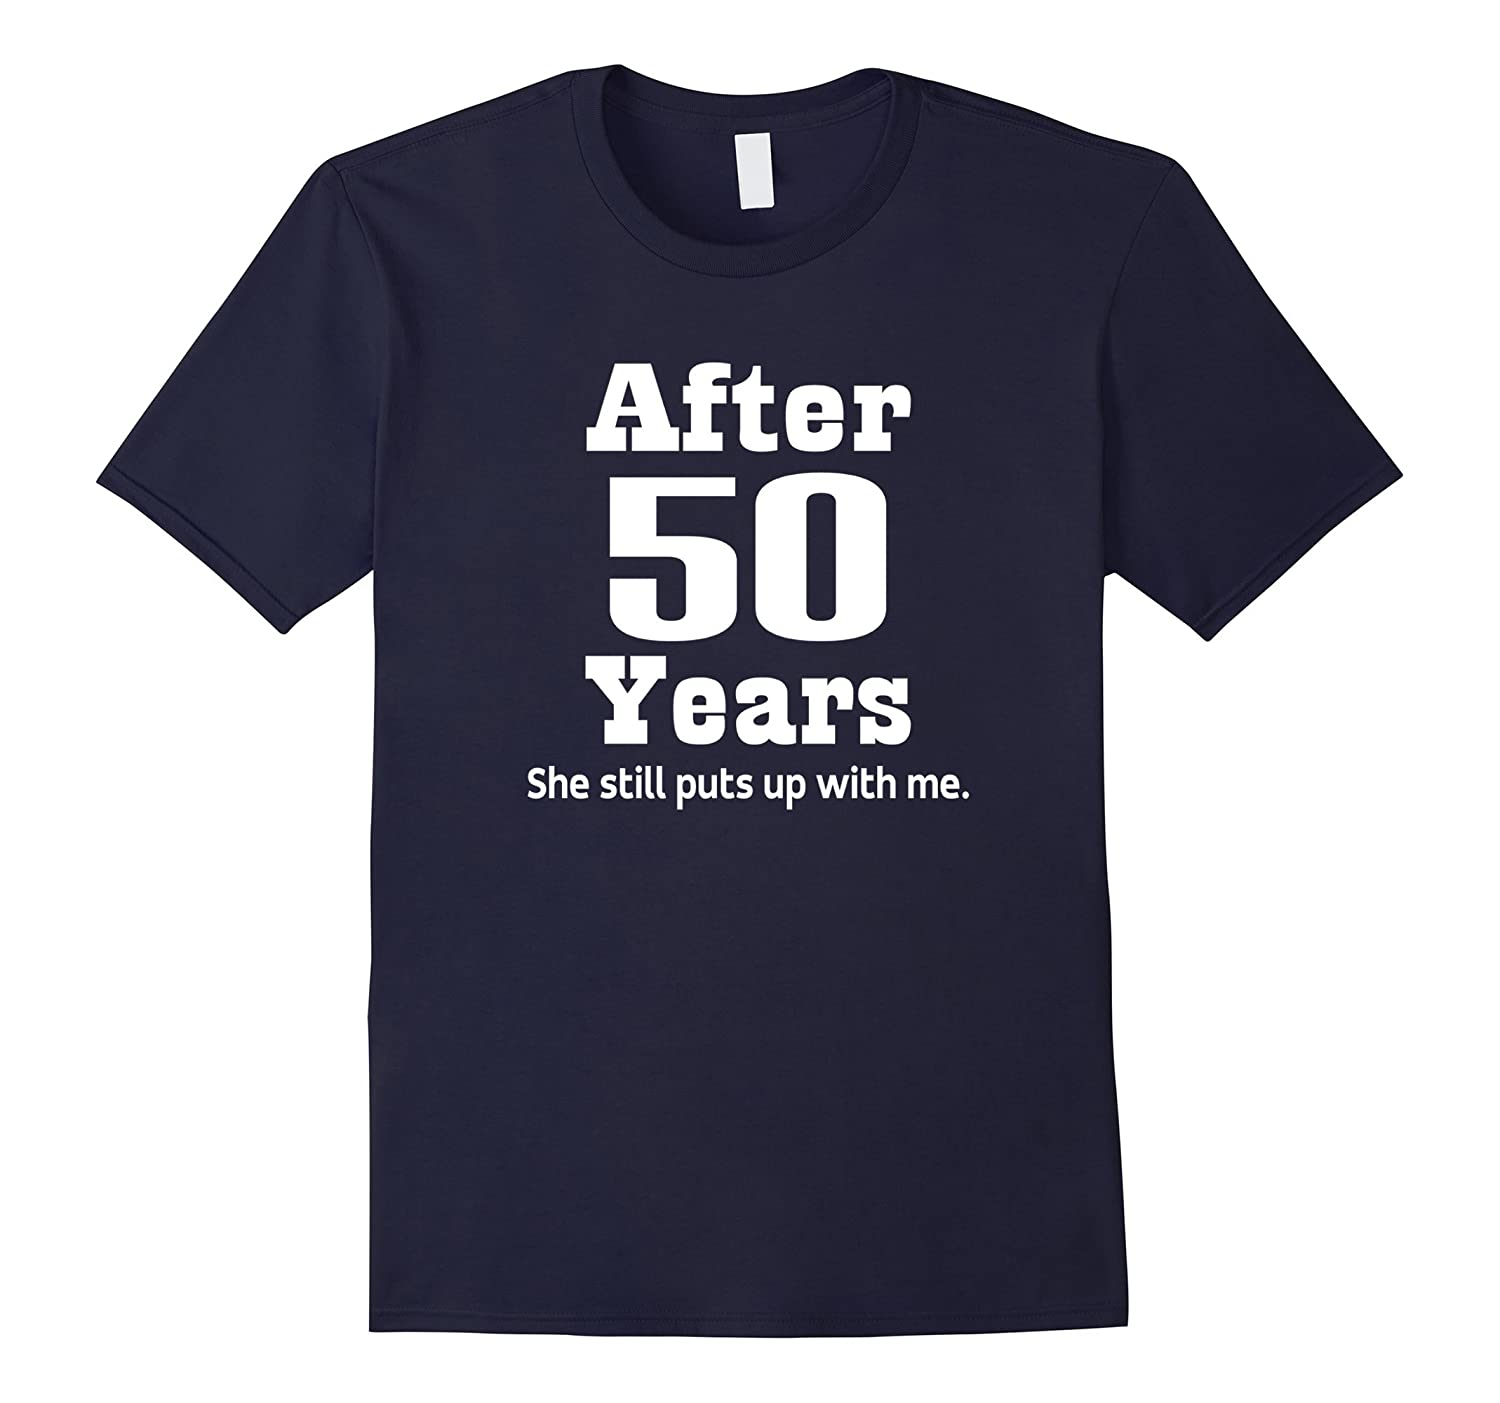 50th Anniversary T-shirt Funny Mens Party Photo Tee-ah my shirt one gift